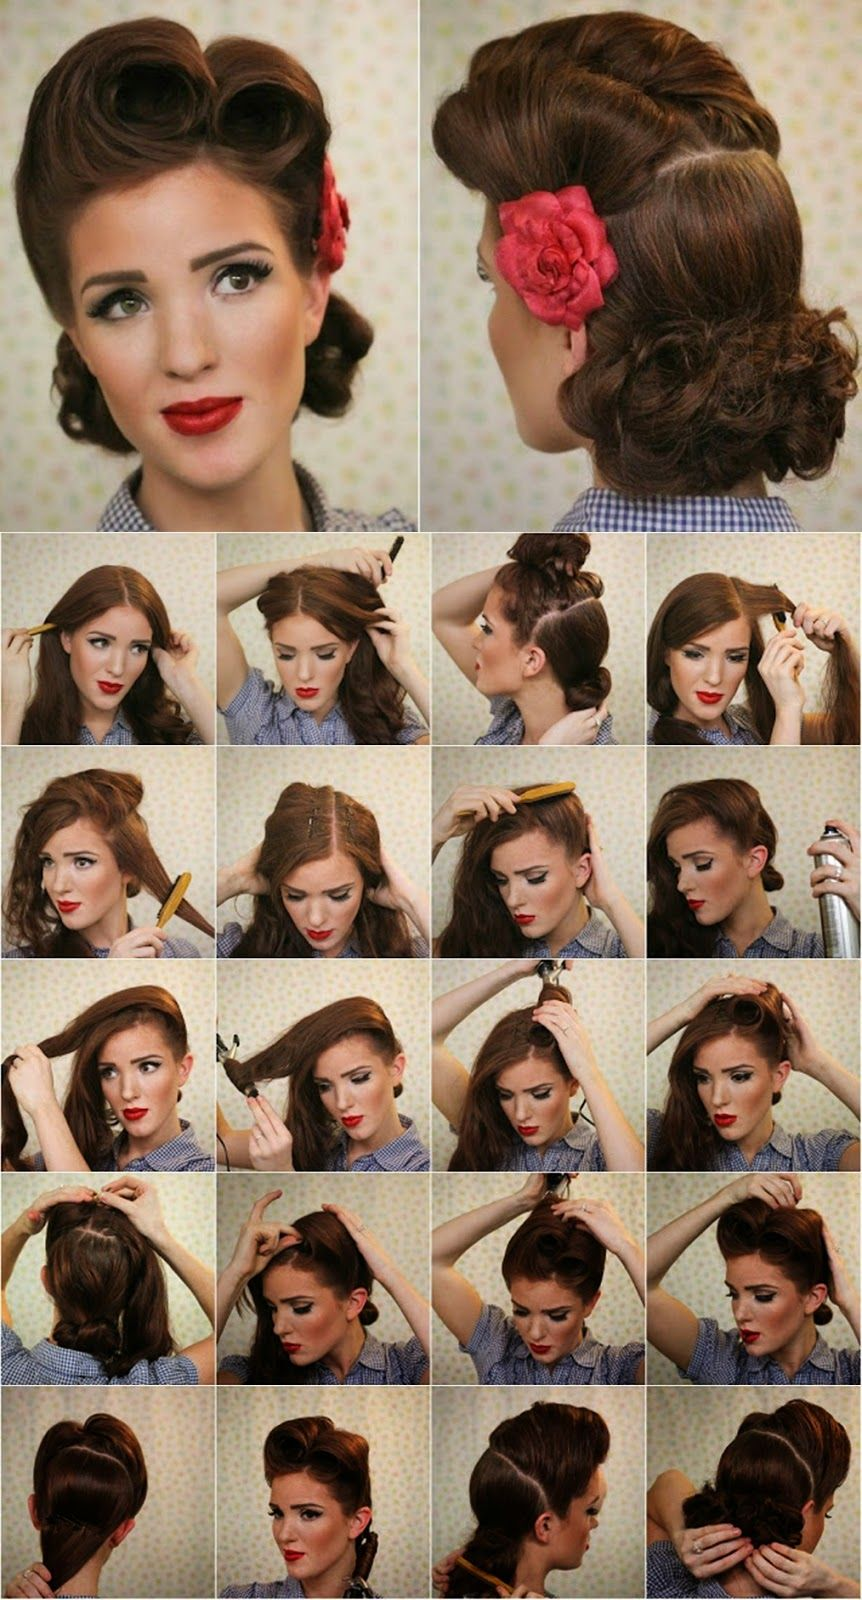 vintage look pin-up victory rolls - complete hair style